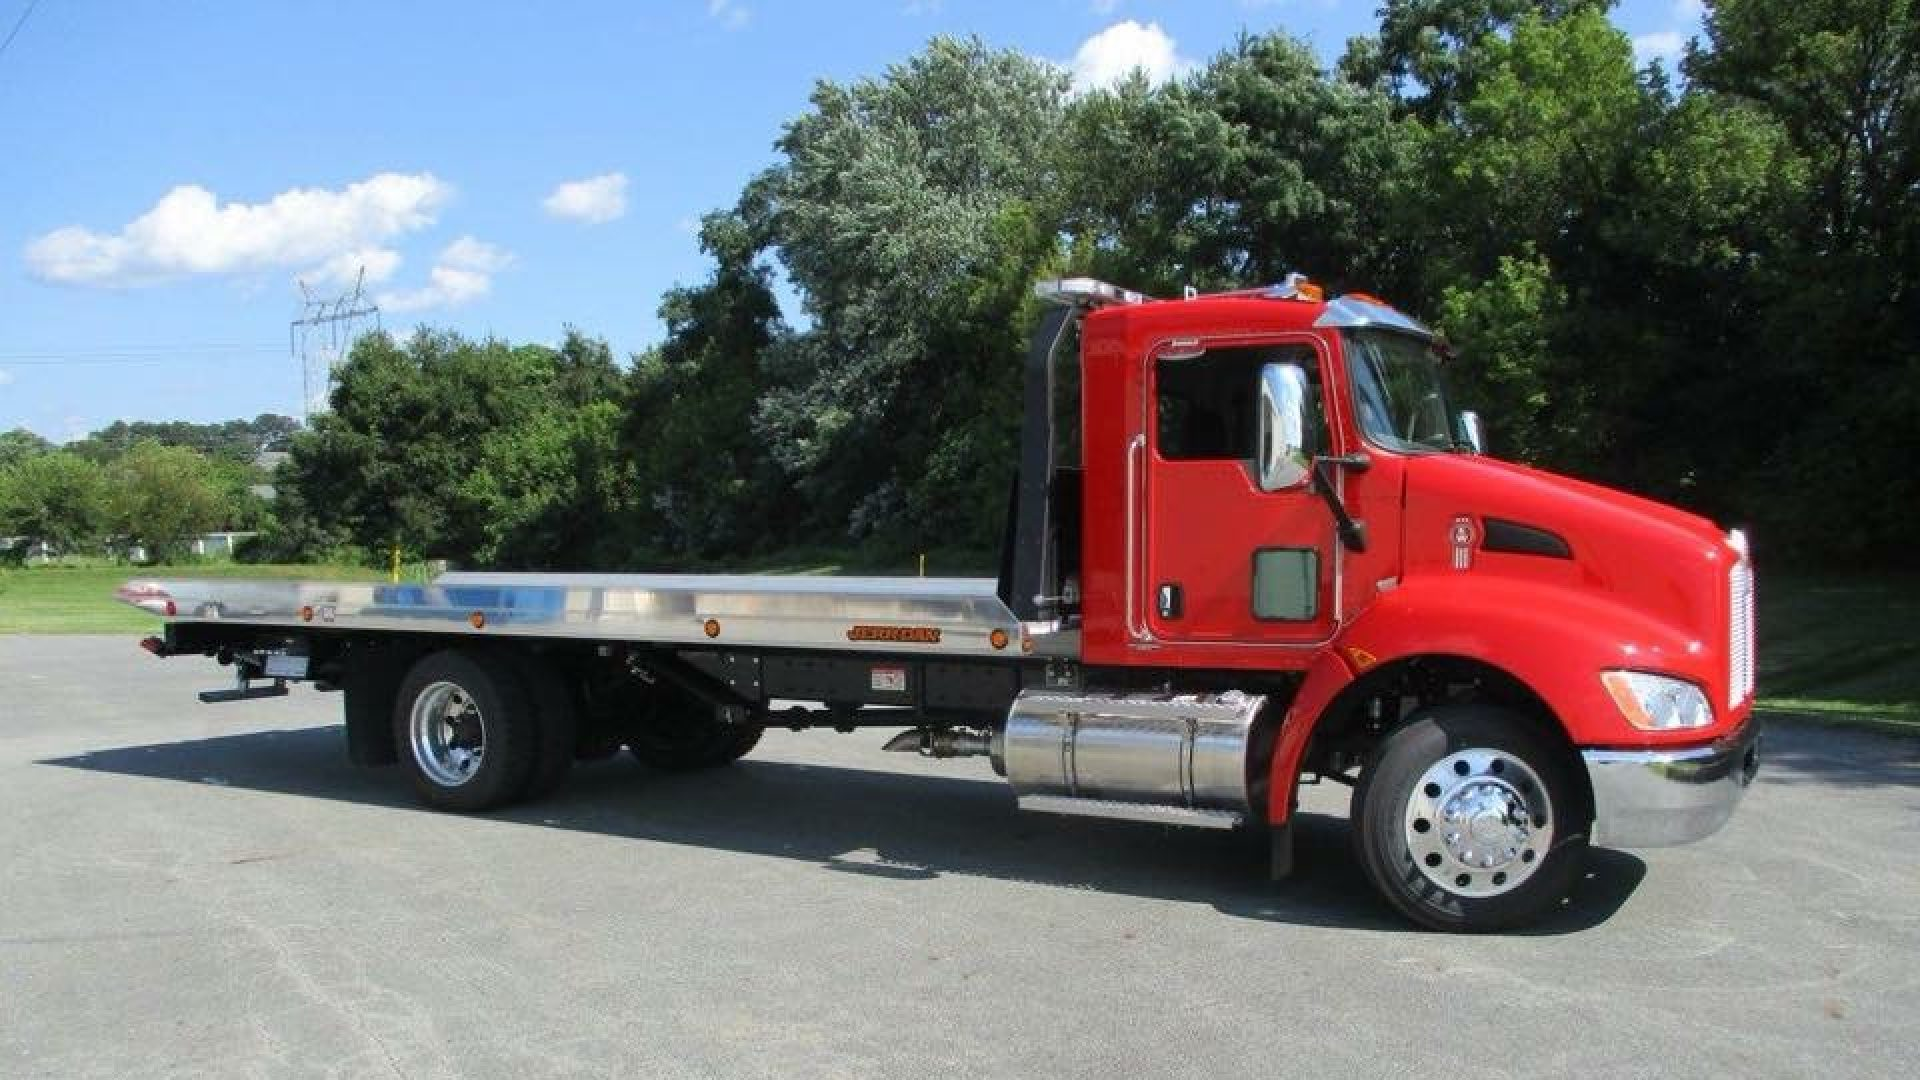 Tow Truck Nashville Tow Truck Towing Service L Tow Truck Towing L Winch Outs